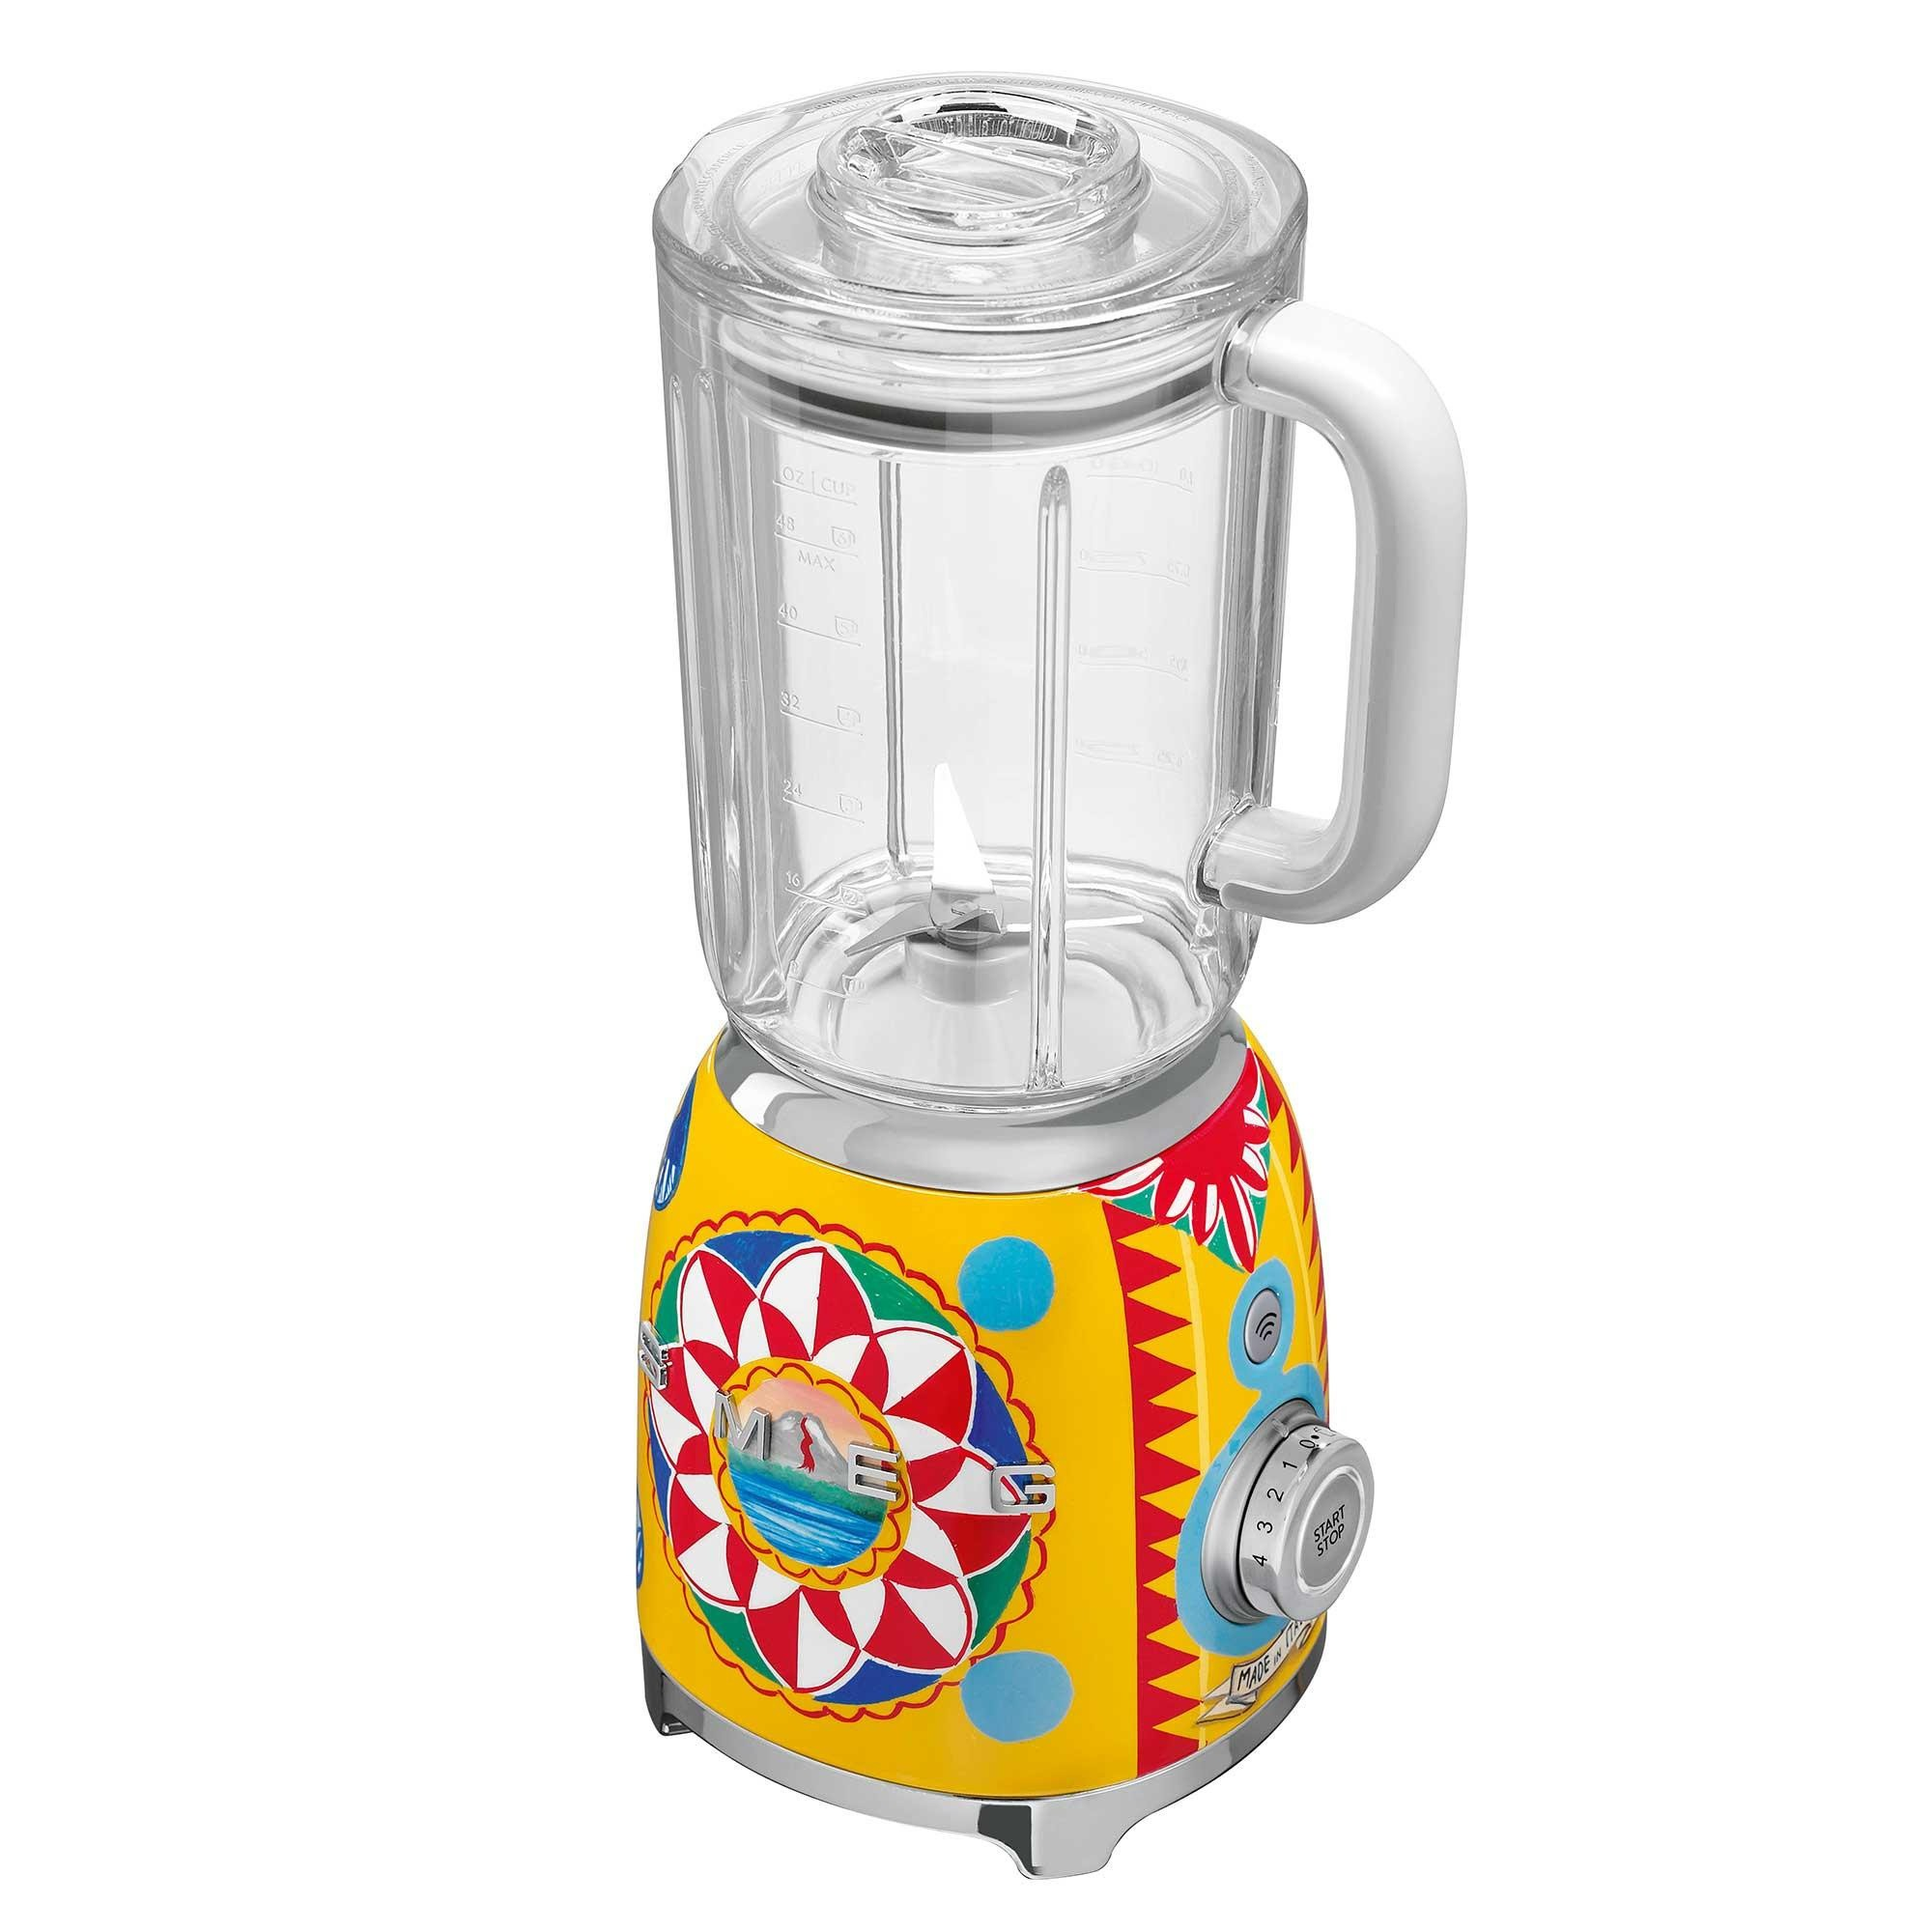 Smeg Limited Edition D G Smeg Blender 1 5l Ambientedirect